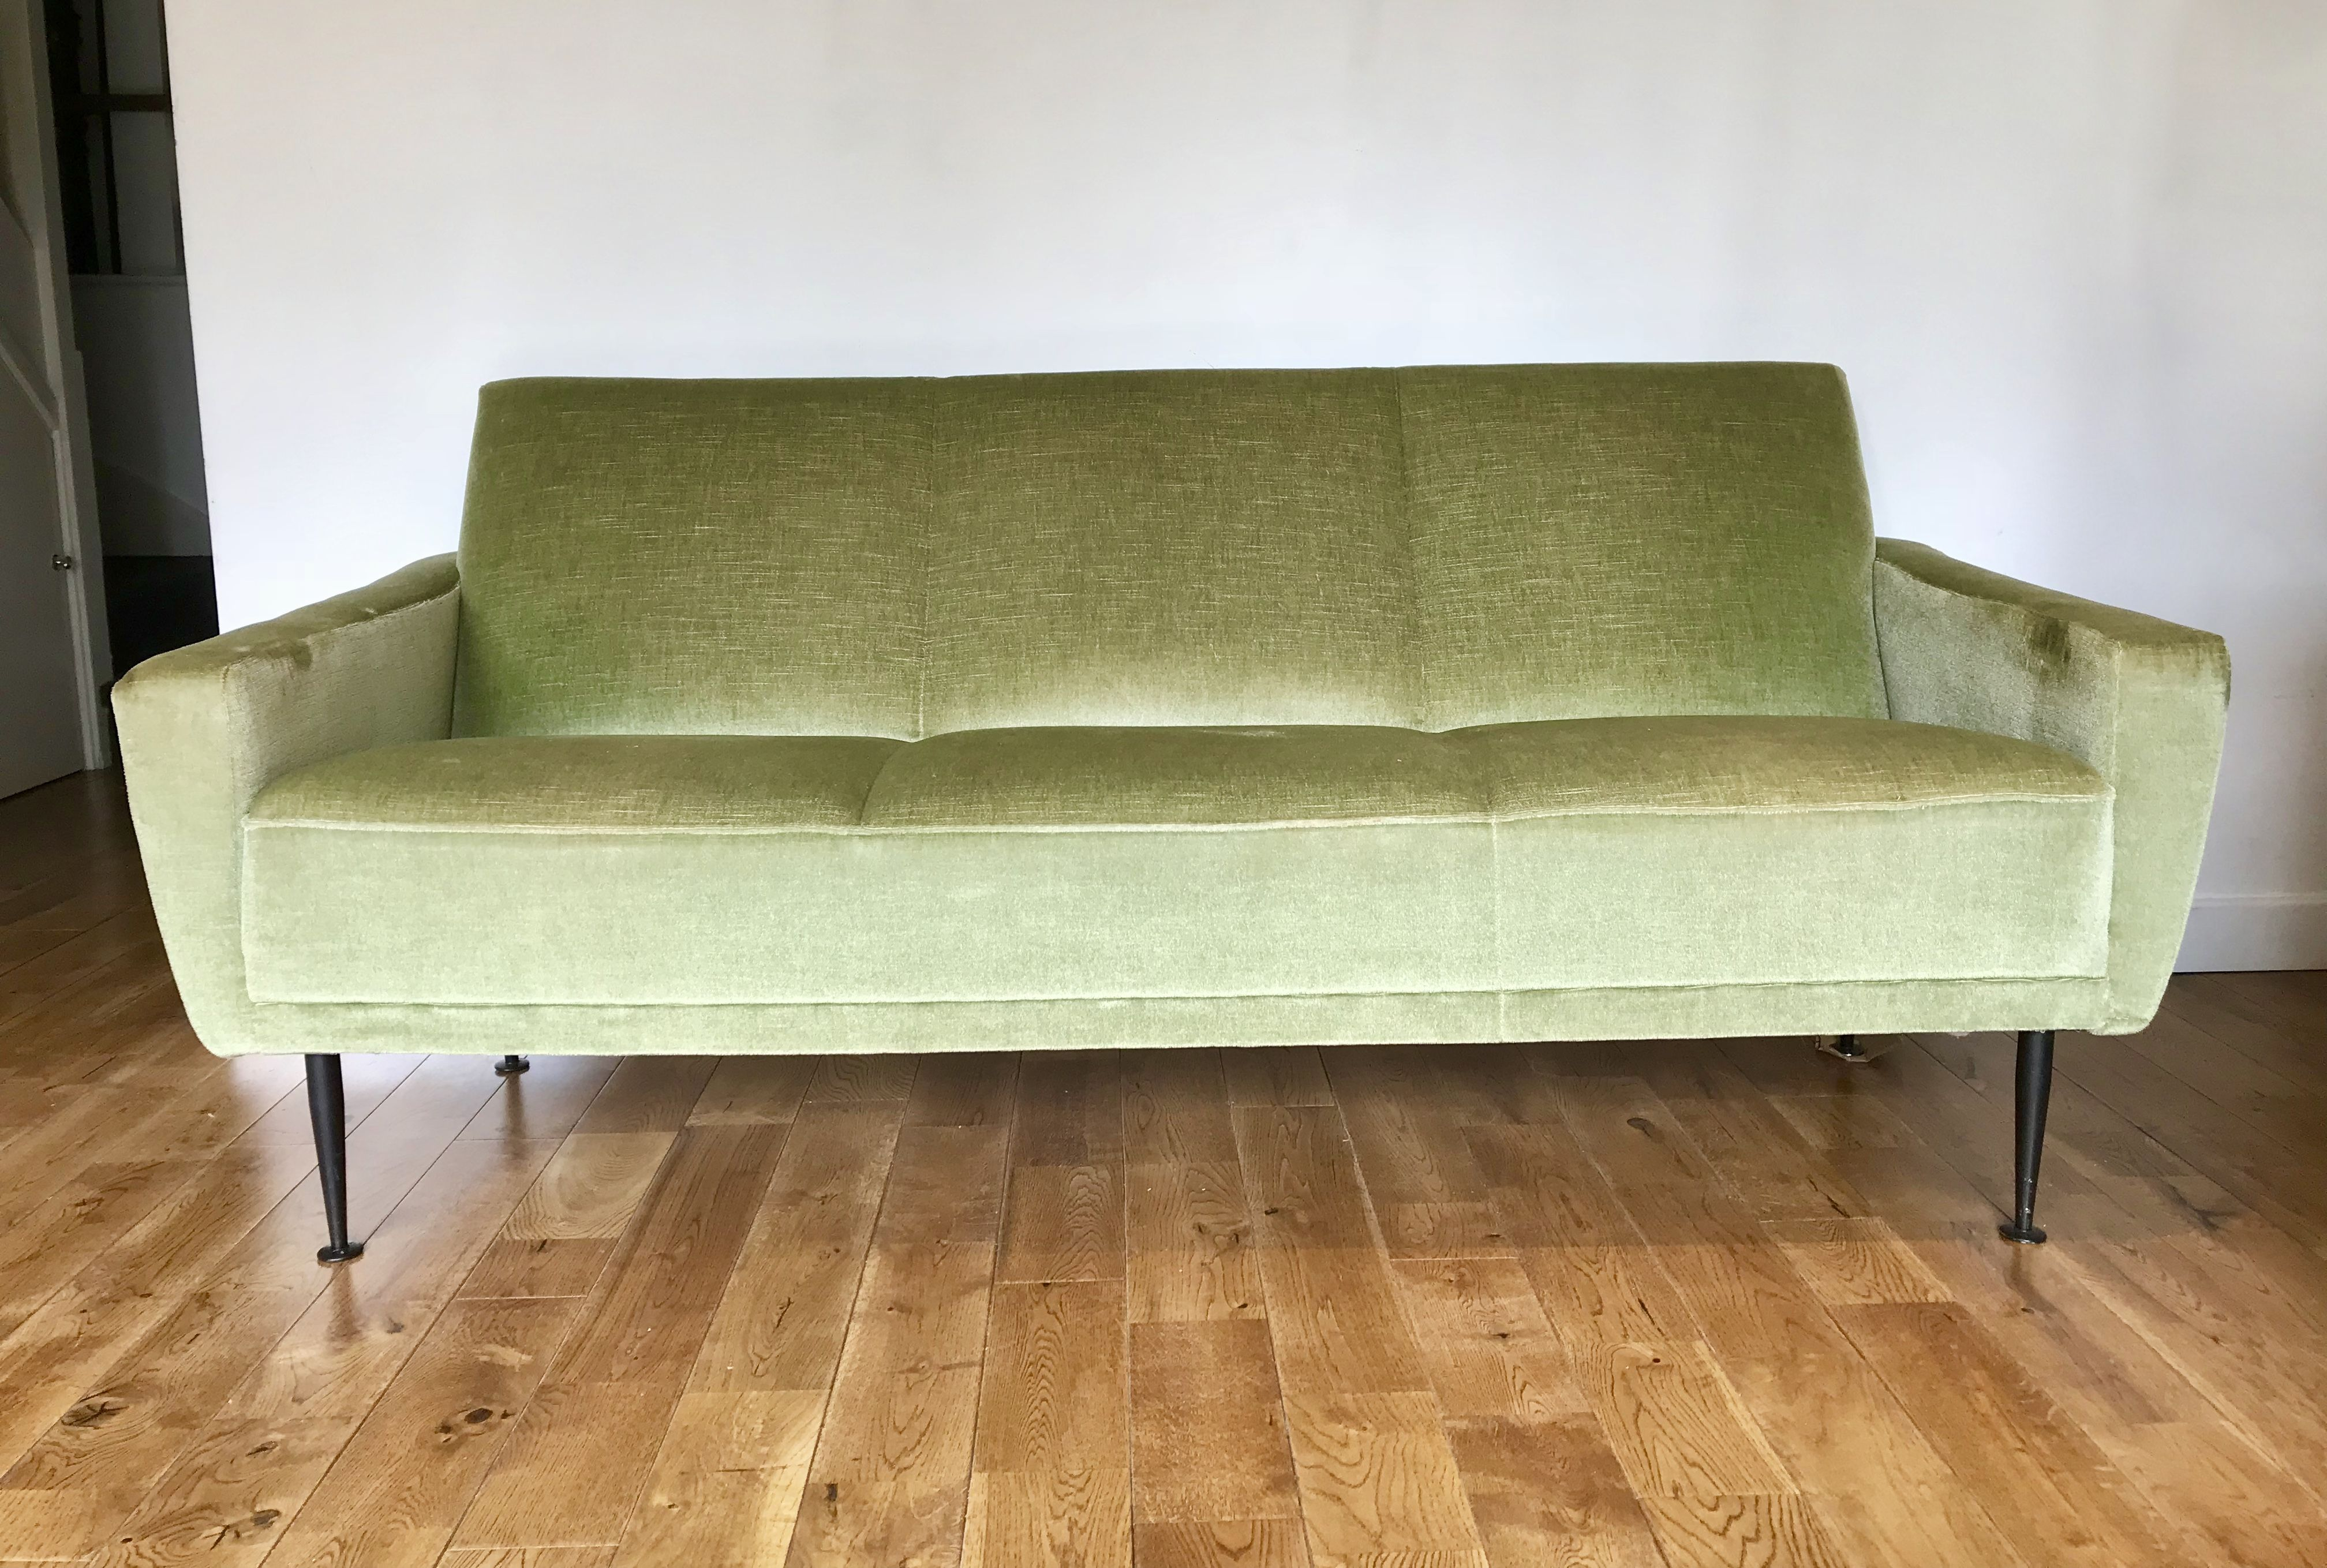 Retro Sofa Wood Vintage Retro Sofa Settee Green Velvet French Vintagefurniture